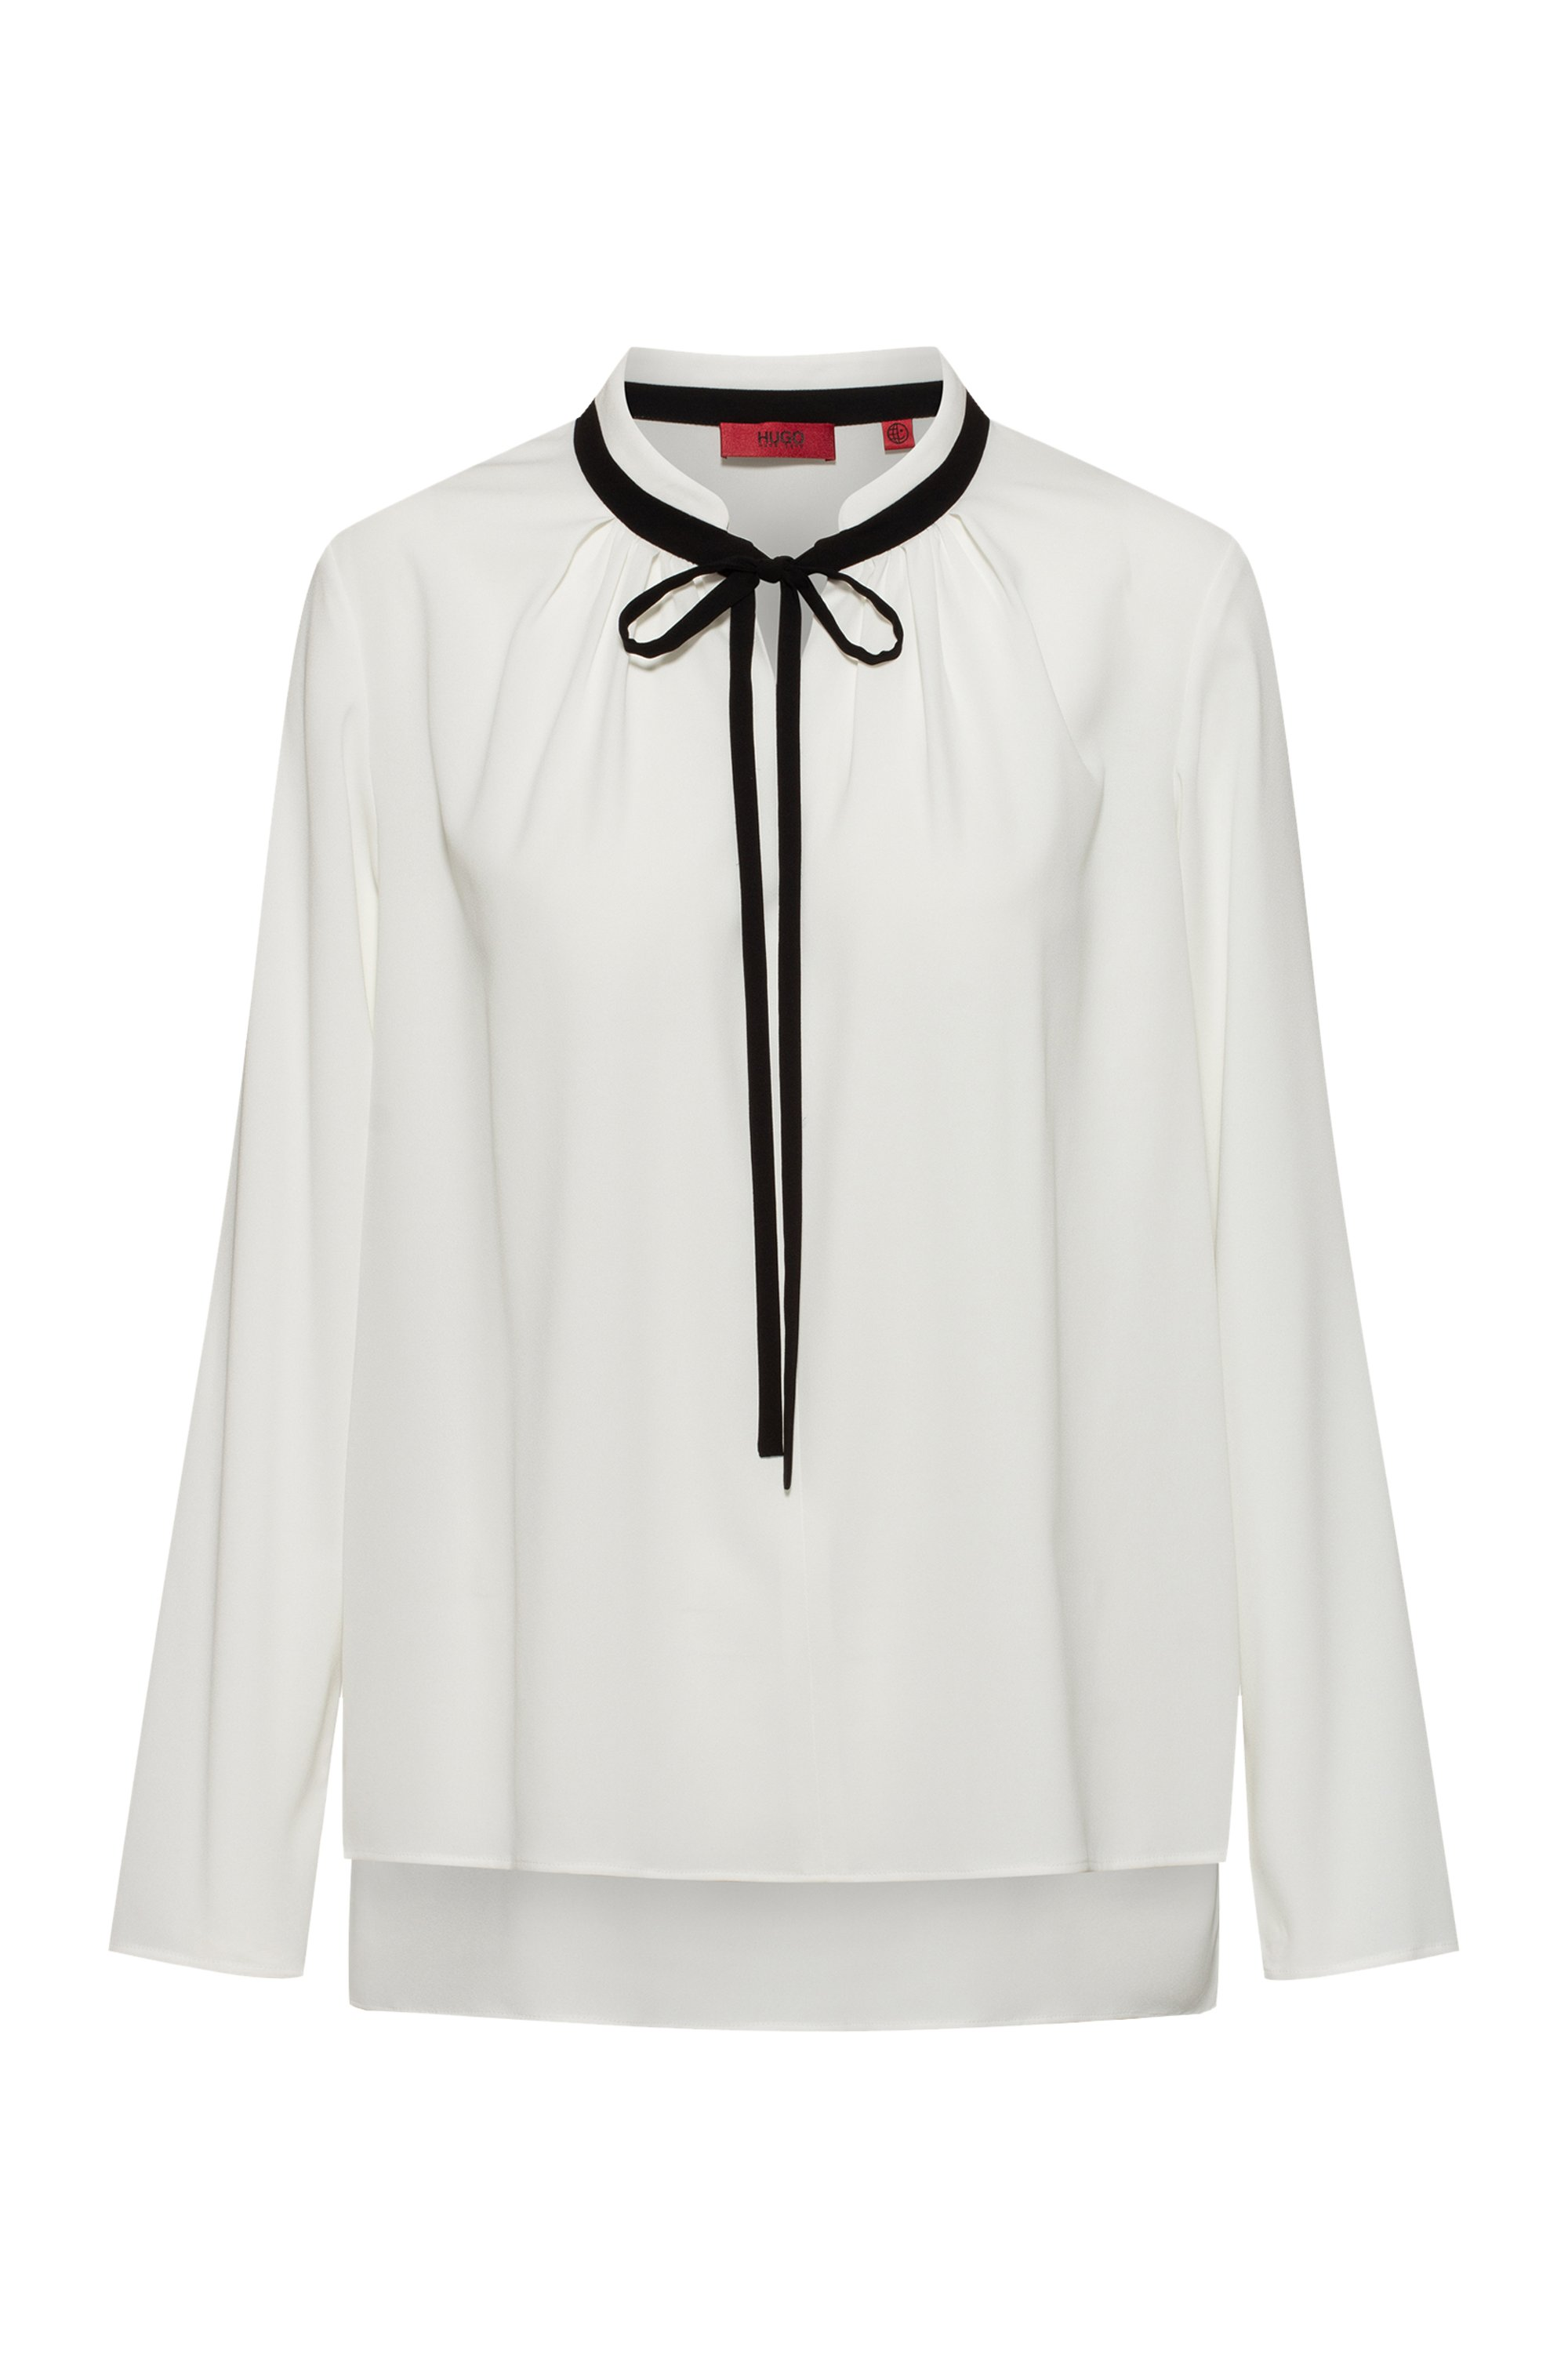 Long-sleeved top with contrast tie-up detail, White